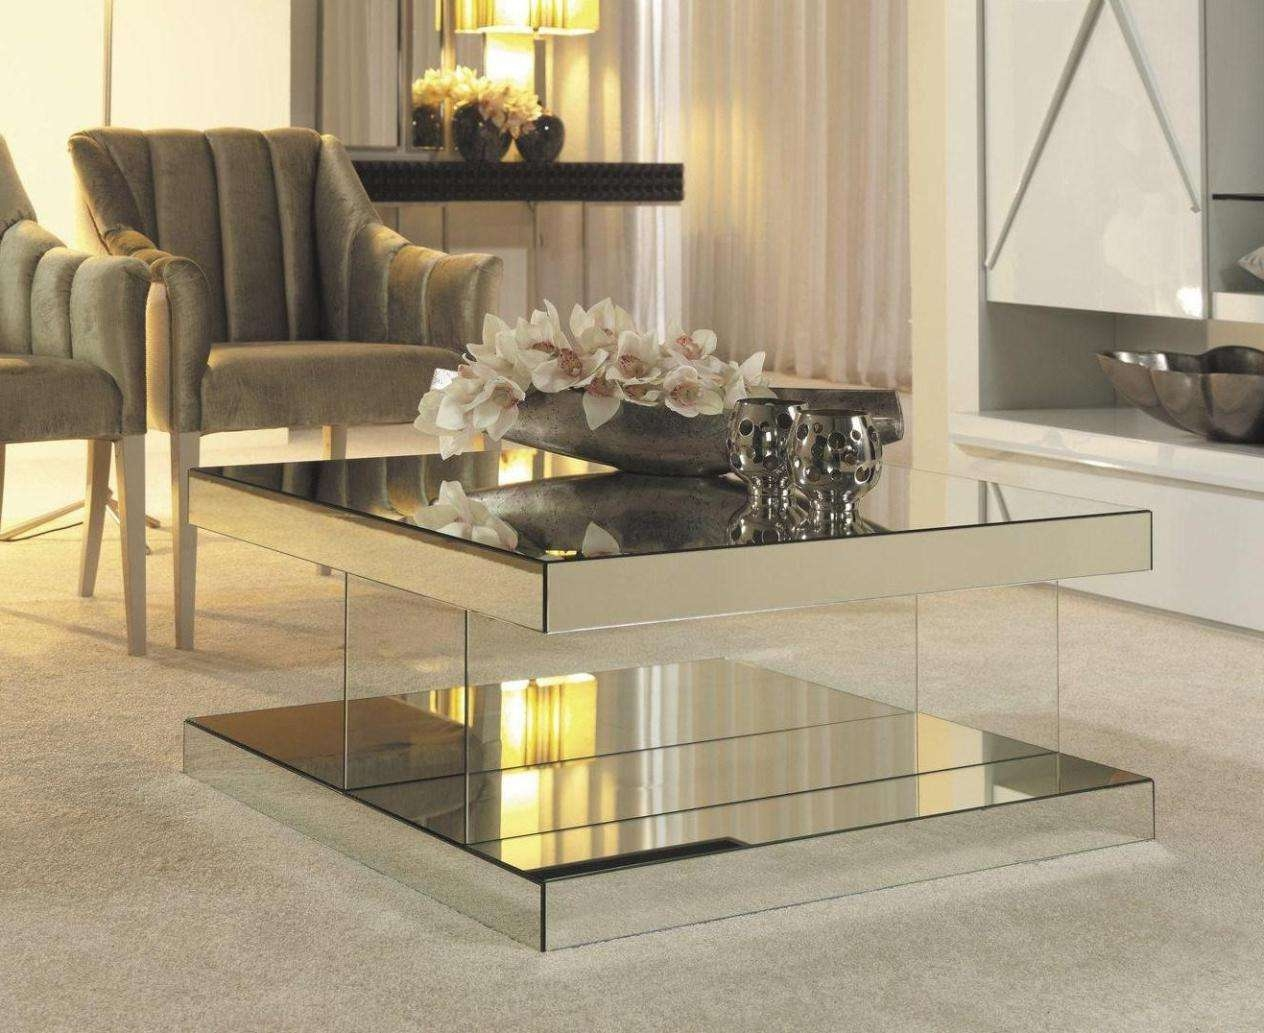 Living Room Mirrored Shelf Coffee Table Ideas With Mirror Tables Pertaining To Favorite Oval Mirrored Coffee Tables (View 14 of 20)